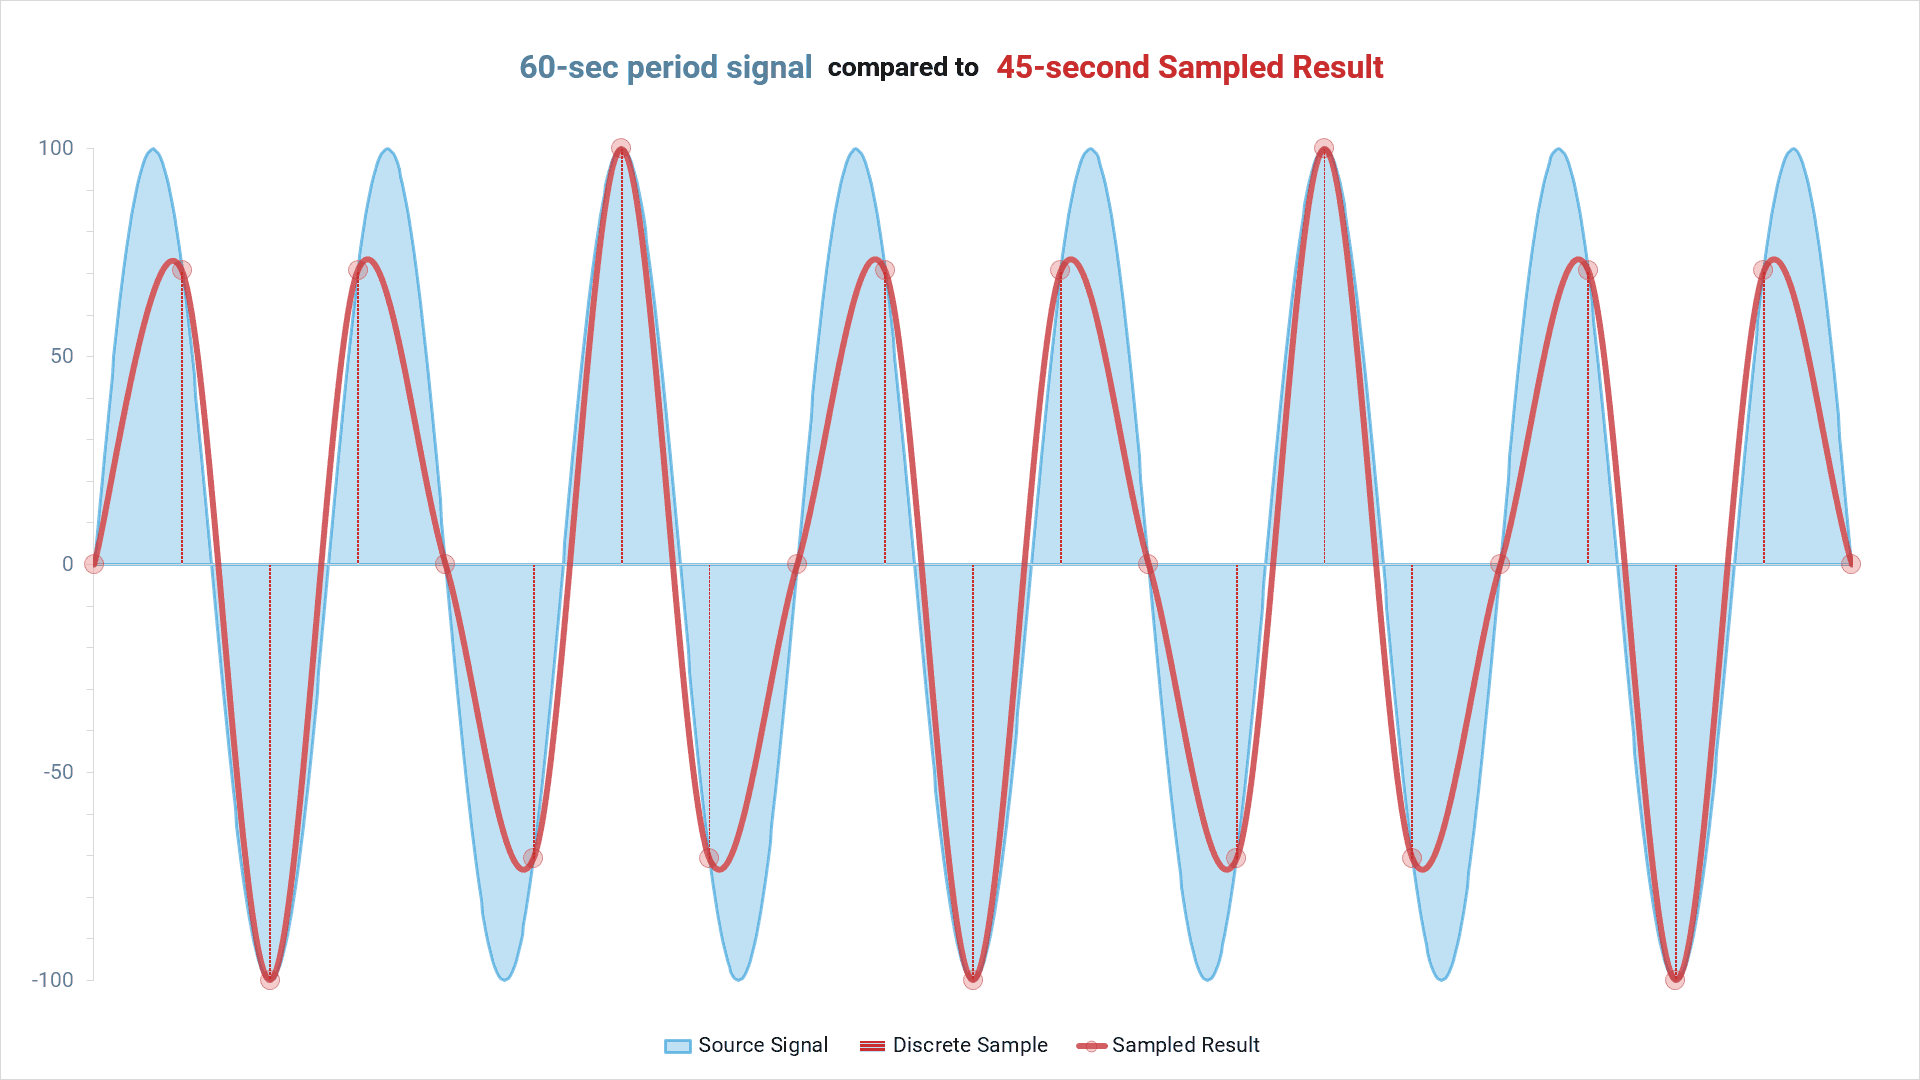 Aliasing: 60-second period signal compared to 45-second sampled result